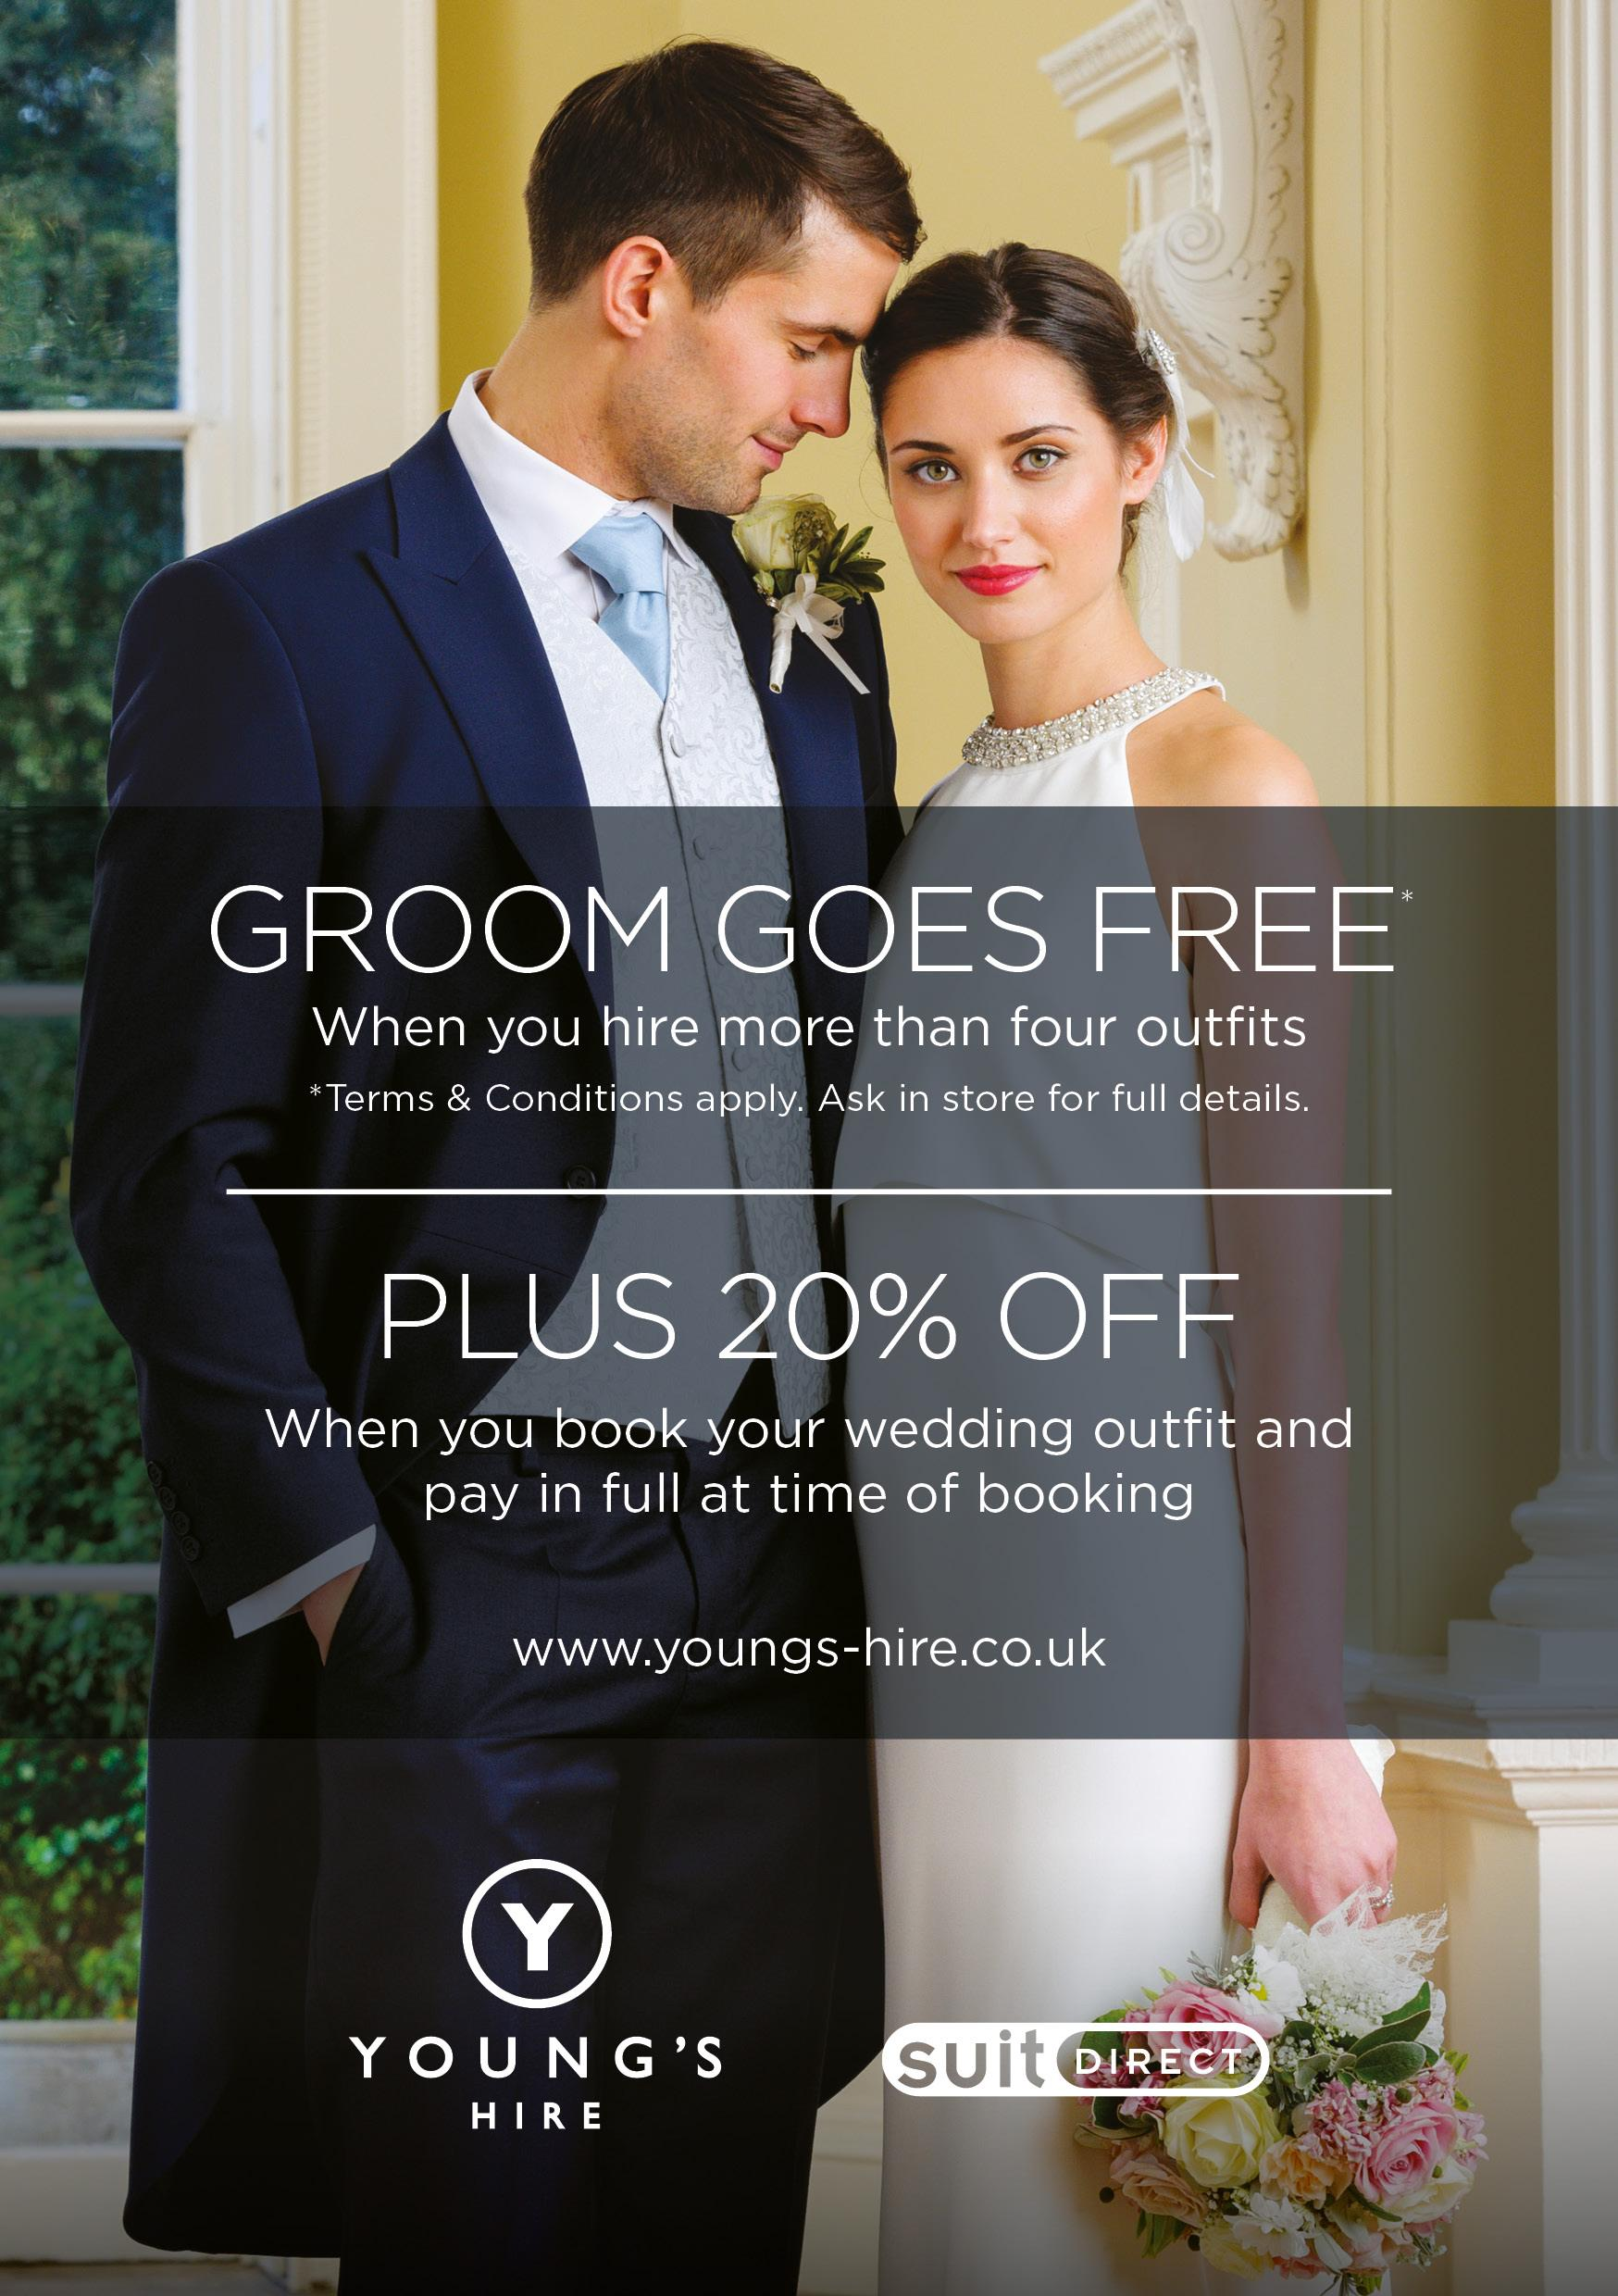 Youngs Hire Menswear Special Offer Red Event Wedding Fayre Holiday inn Ellesmere Port Cheshire Oaks Wedding Fair Chester, Cheshire, North West Merseyside Wirral3.jpg2.jpg